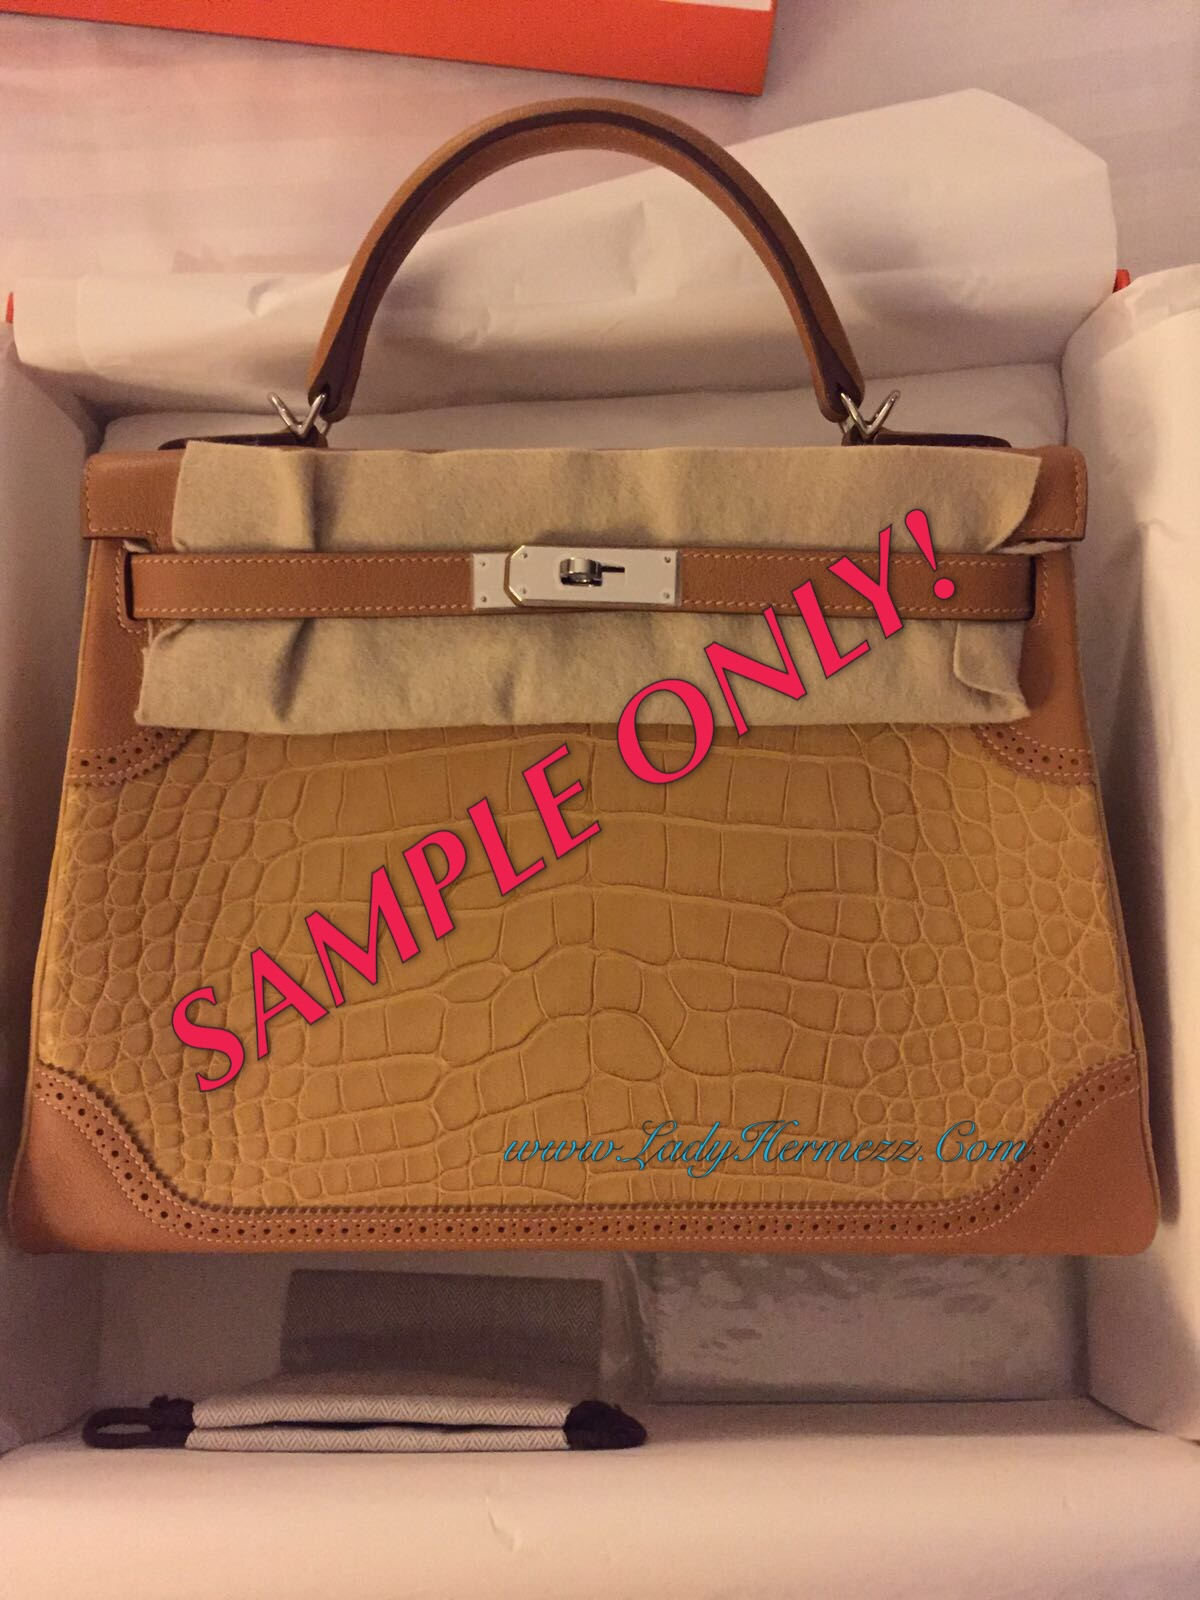 47ad5d1d78 32cm Hermes Kelly Ghillies in Pale brown Maise and Caramel trim. 2016  limited edition catwalk Hermes Kelly.